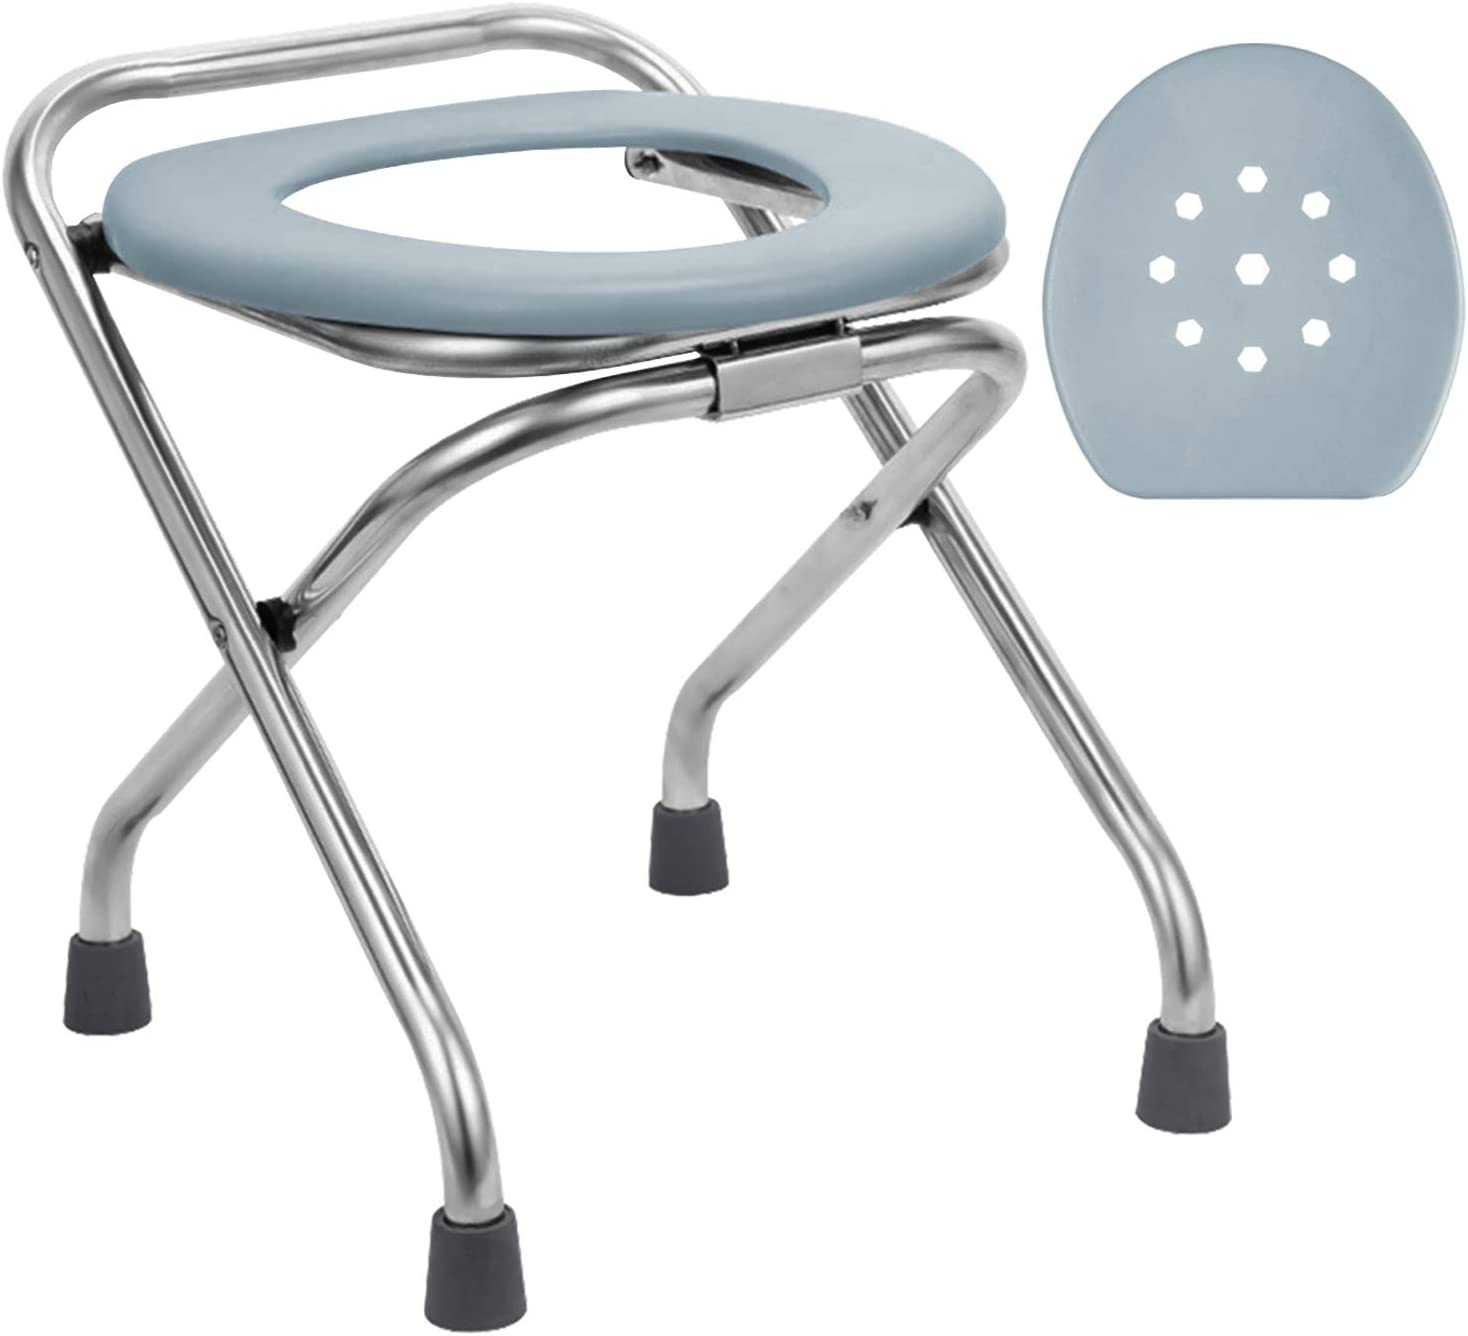 """BLIKA 16.5"""" High Stainless Steel Folding Commode Portable Toilet Seat, Commode Chair with Lid, Camp Toilet Seat Perfect for Camping, Hiking, Trips, Construction Sites : Sports & Outdoors"""